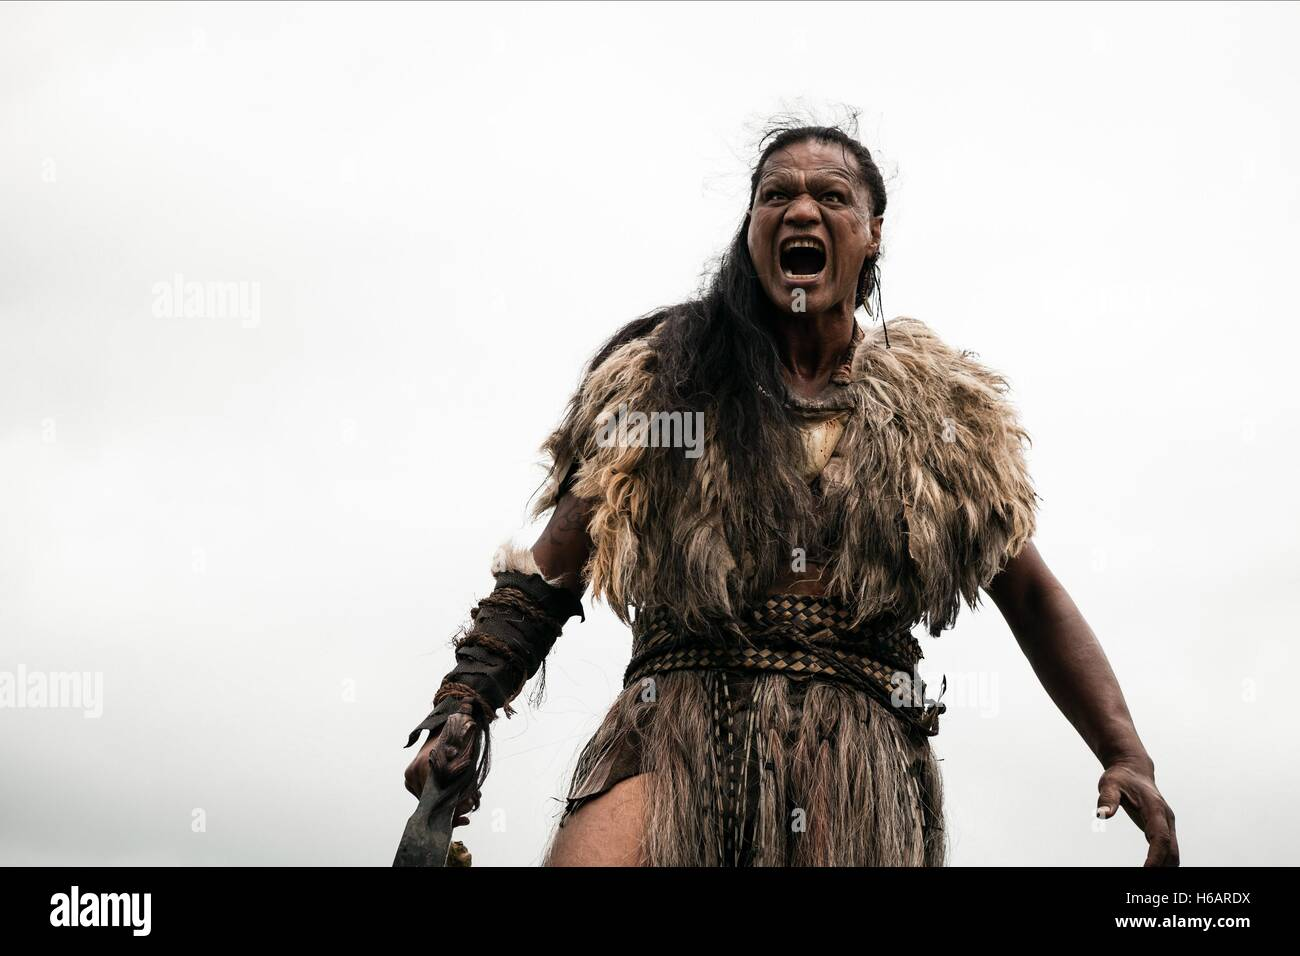 LAWRENCE MAKOARE THE DEAD LANDS (2014) - Stock Image